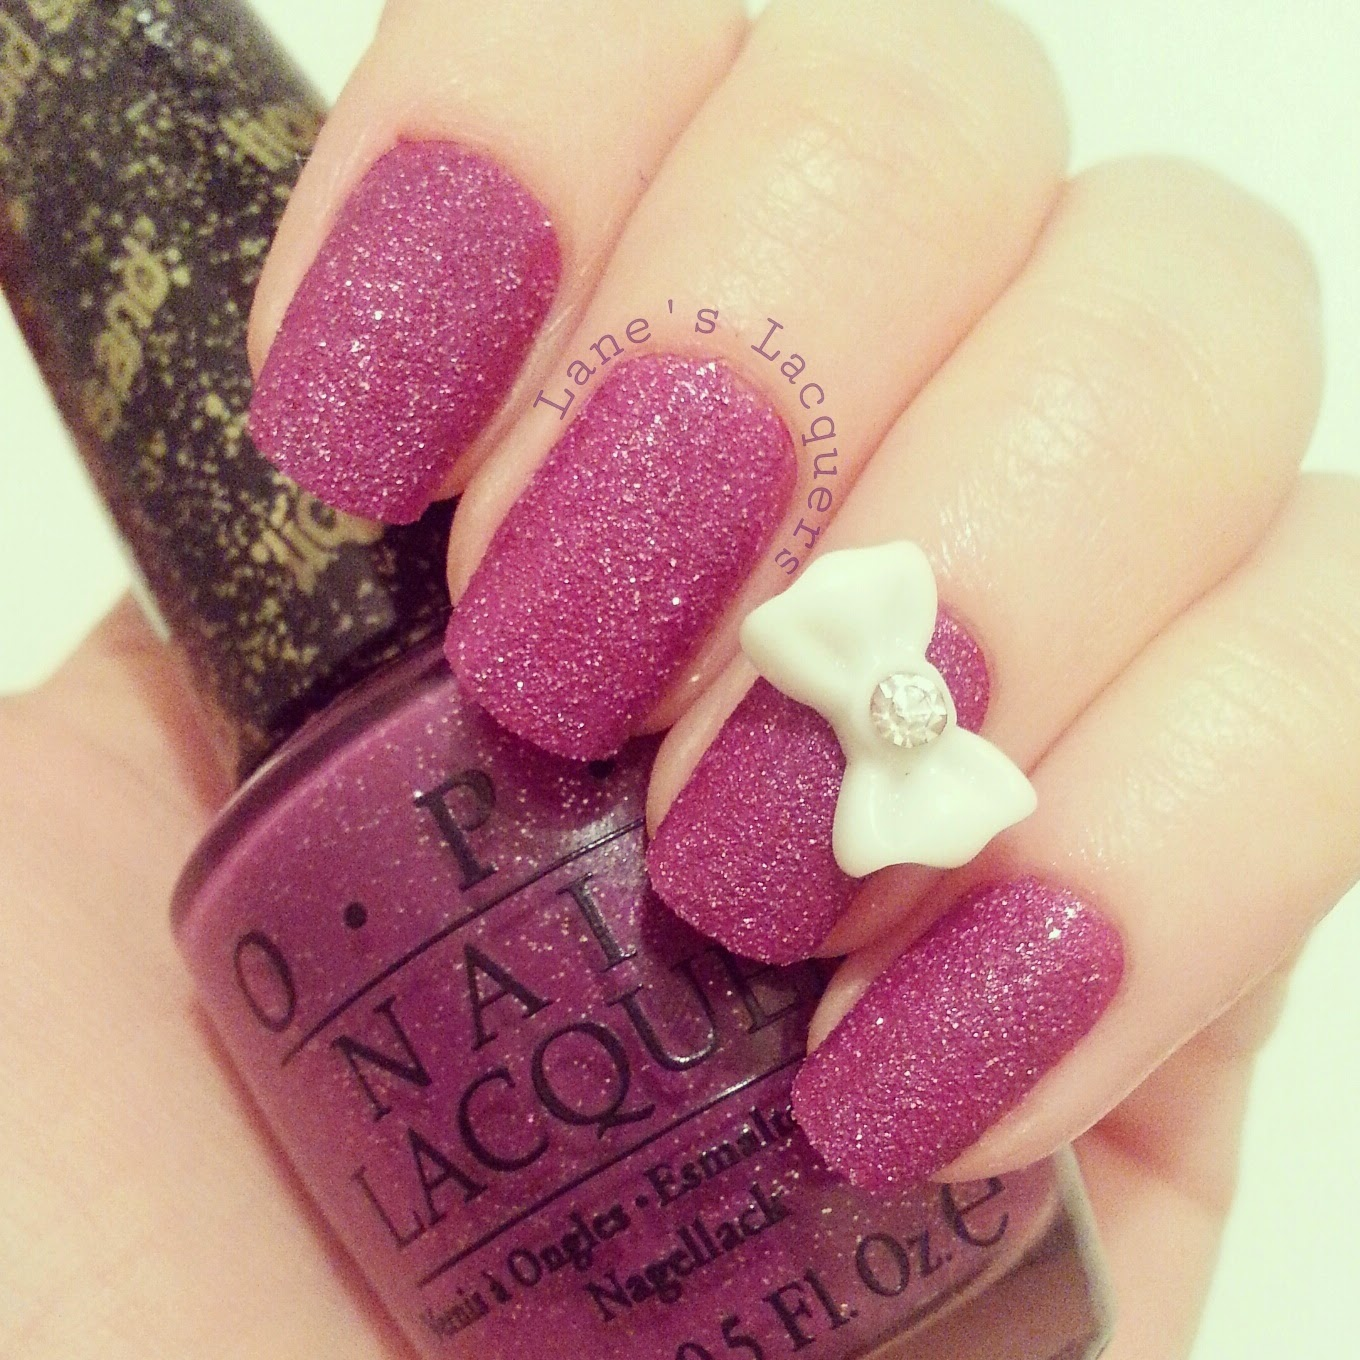 OPI-liquid-sand-my-secret-crush-3d-bow-manicure (2)